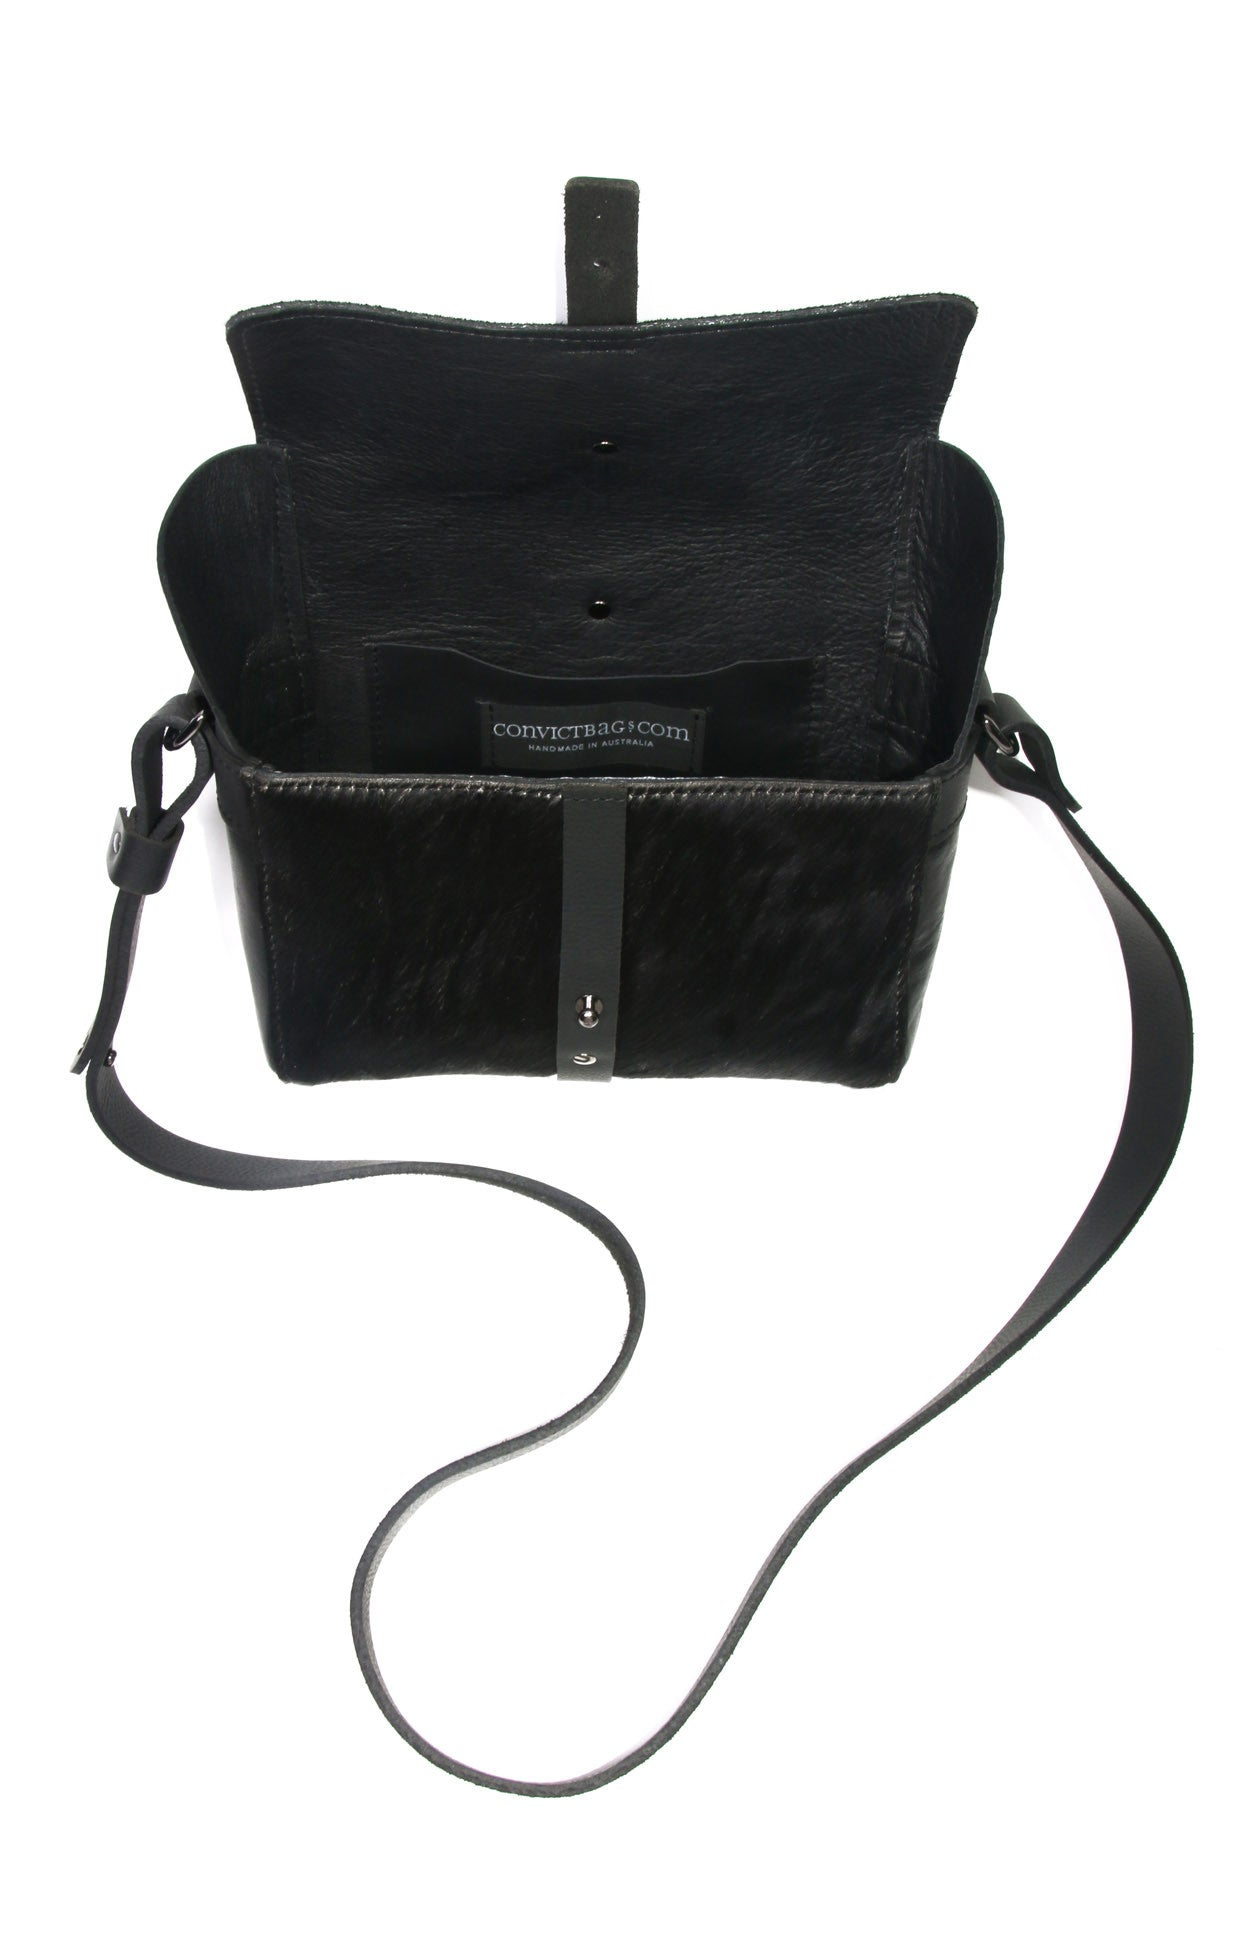 Sophia Boxy Bag - Black cowhide leather - open